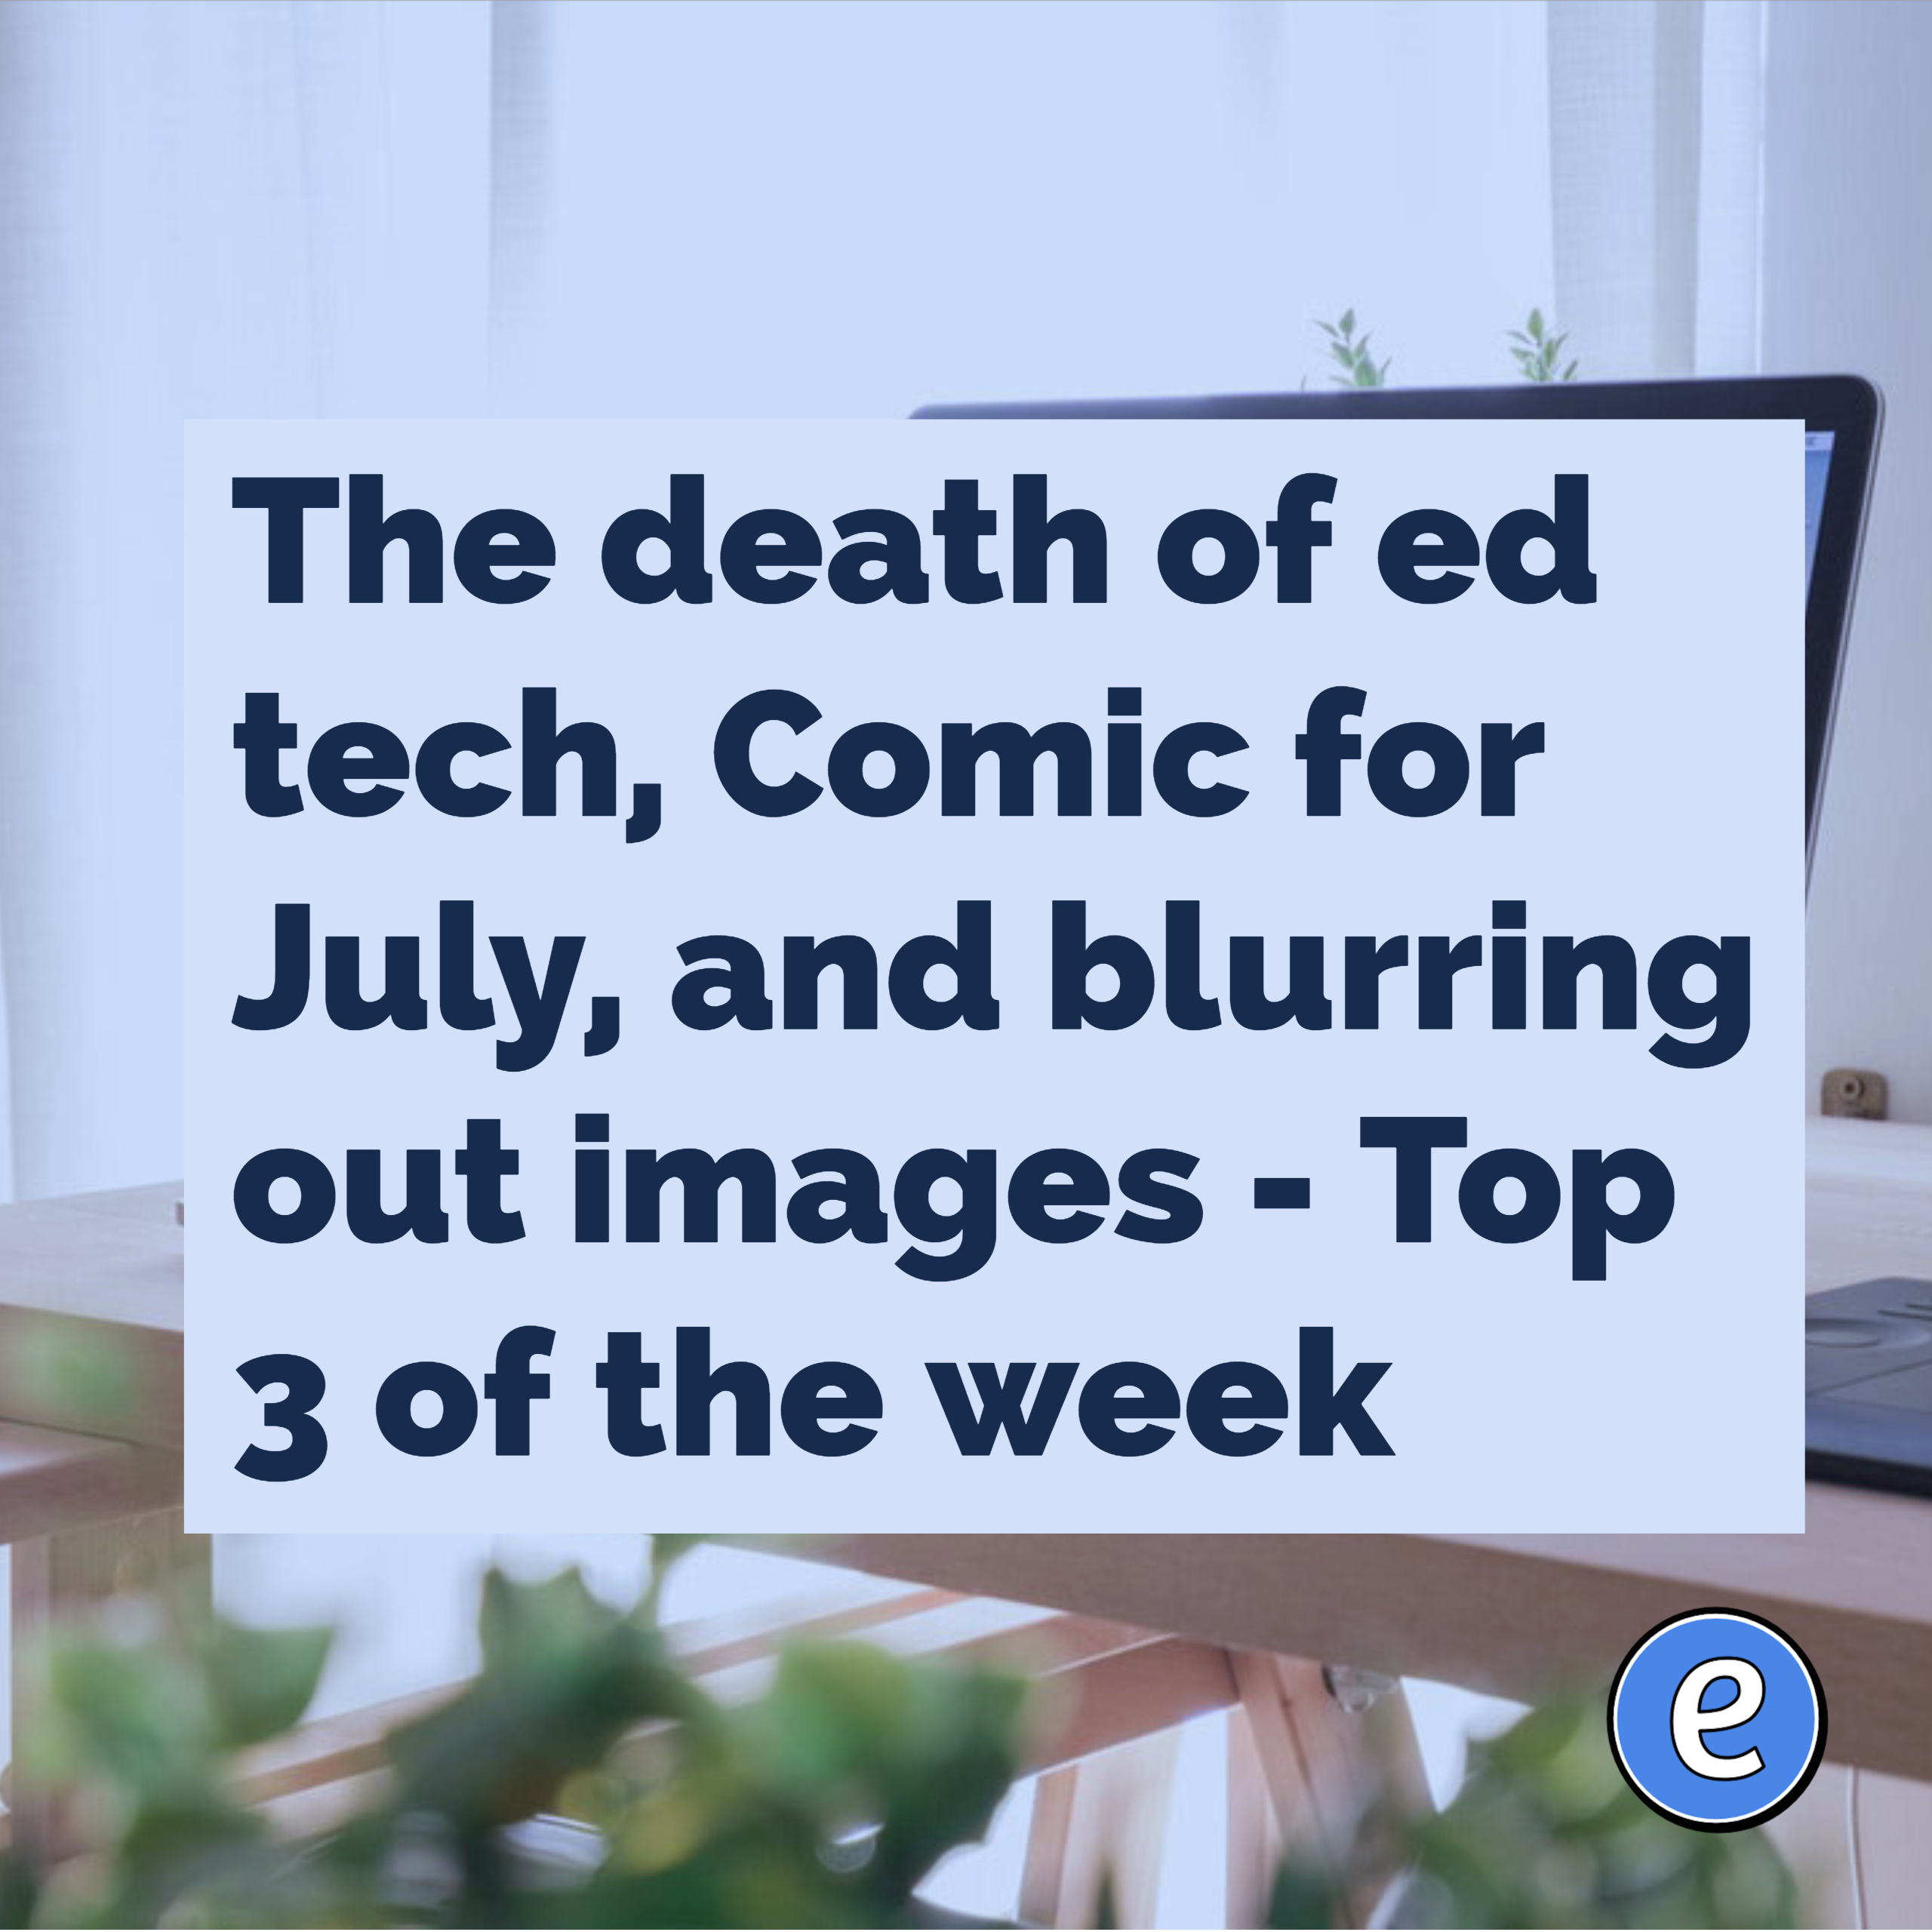 The death of ed tech, Comic for July, and blurring out images – Top 3 of the week